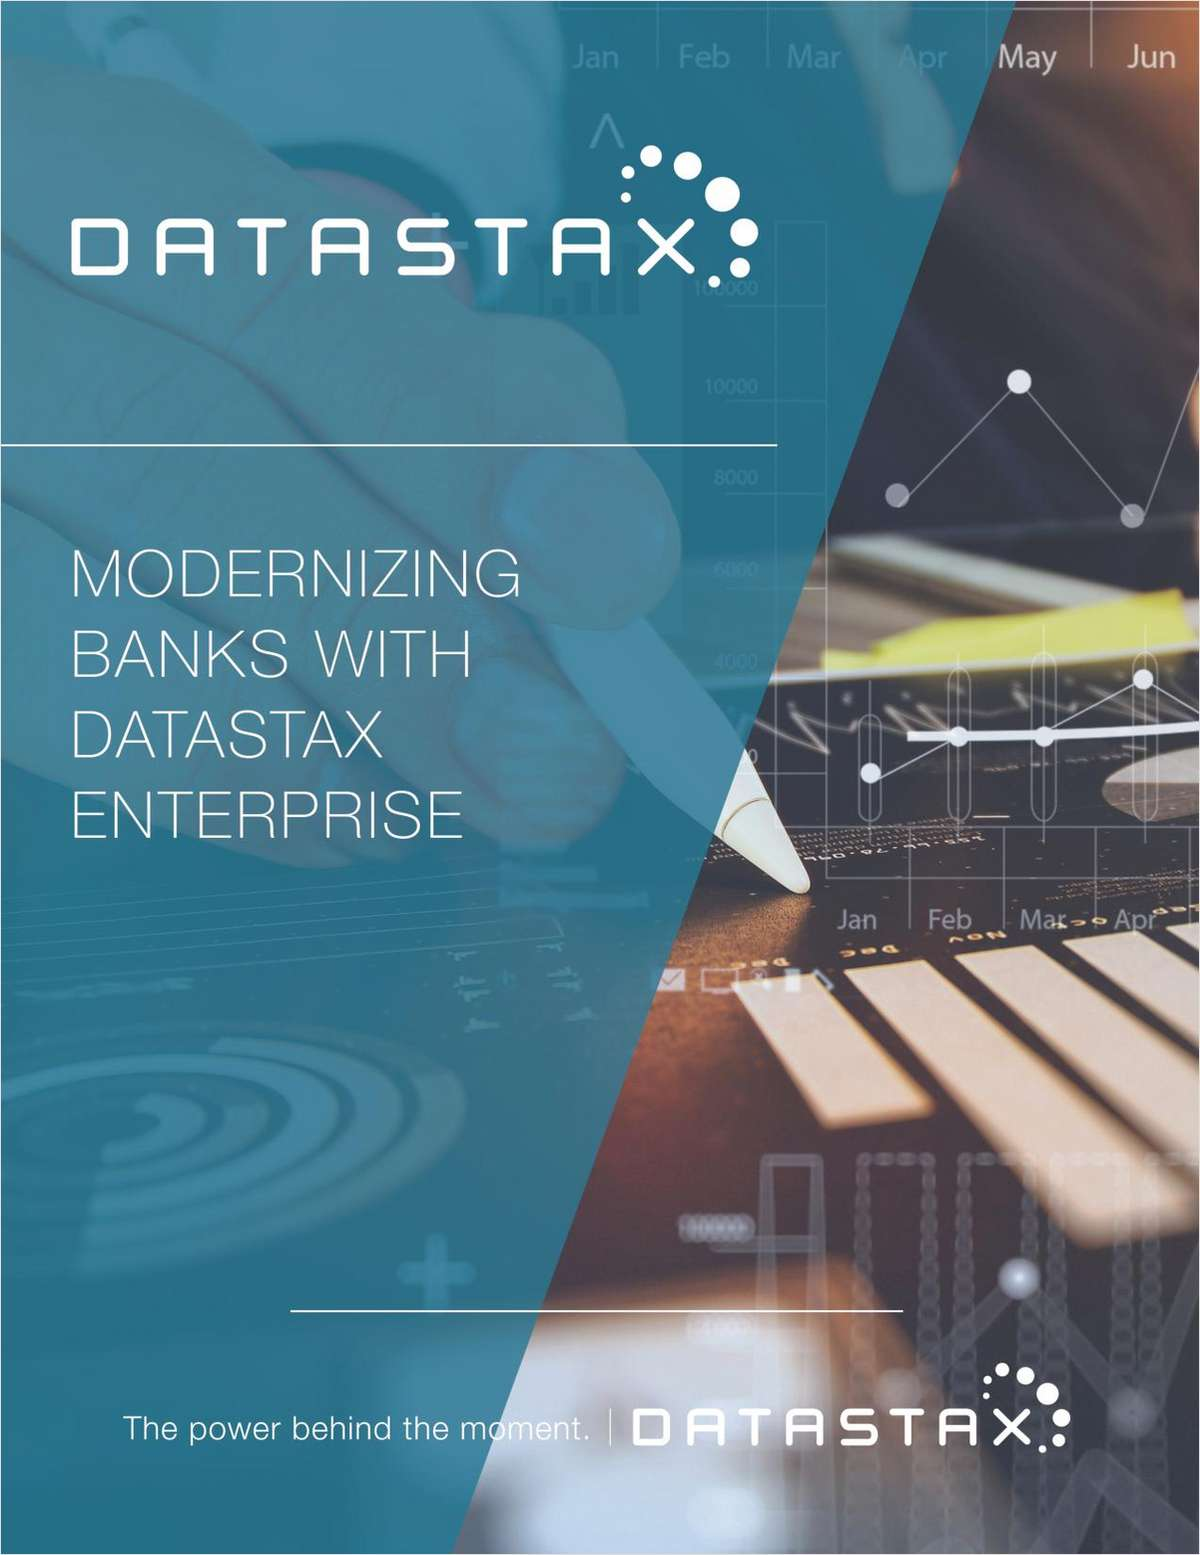 Modernizing Banks With DataStax Enterprise